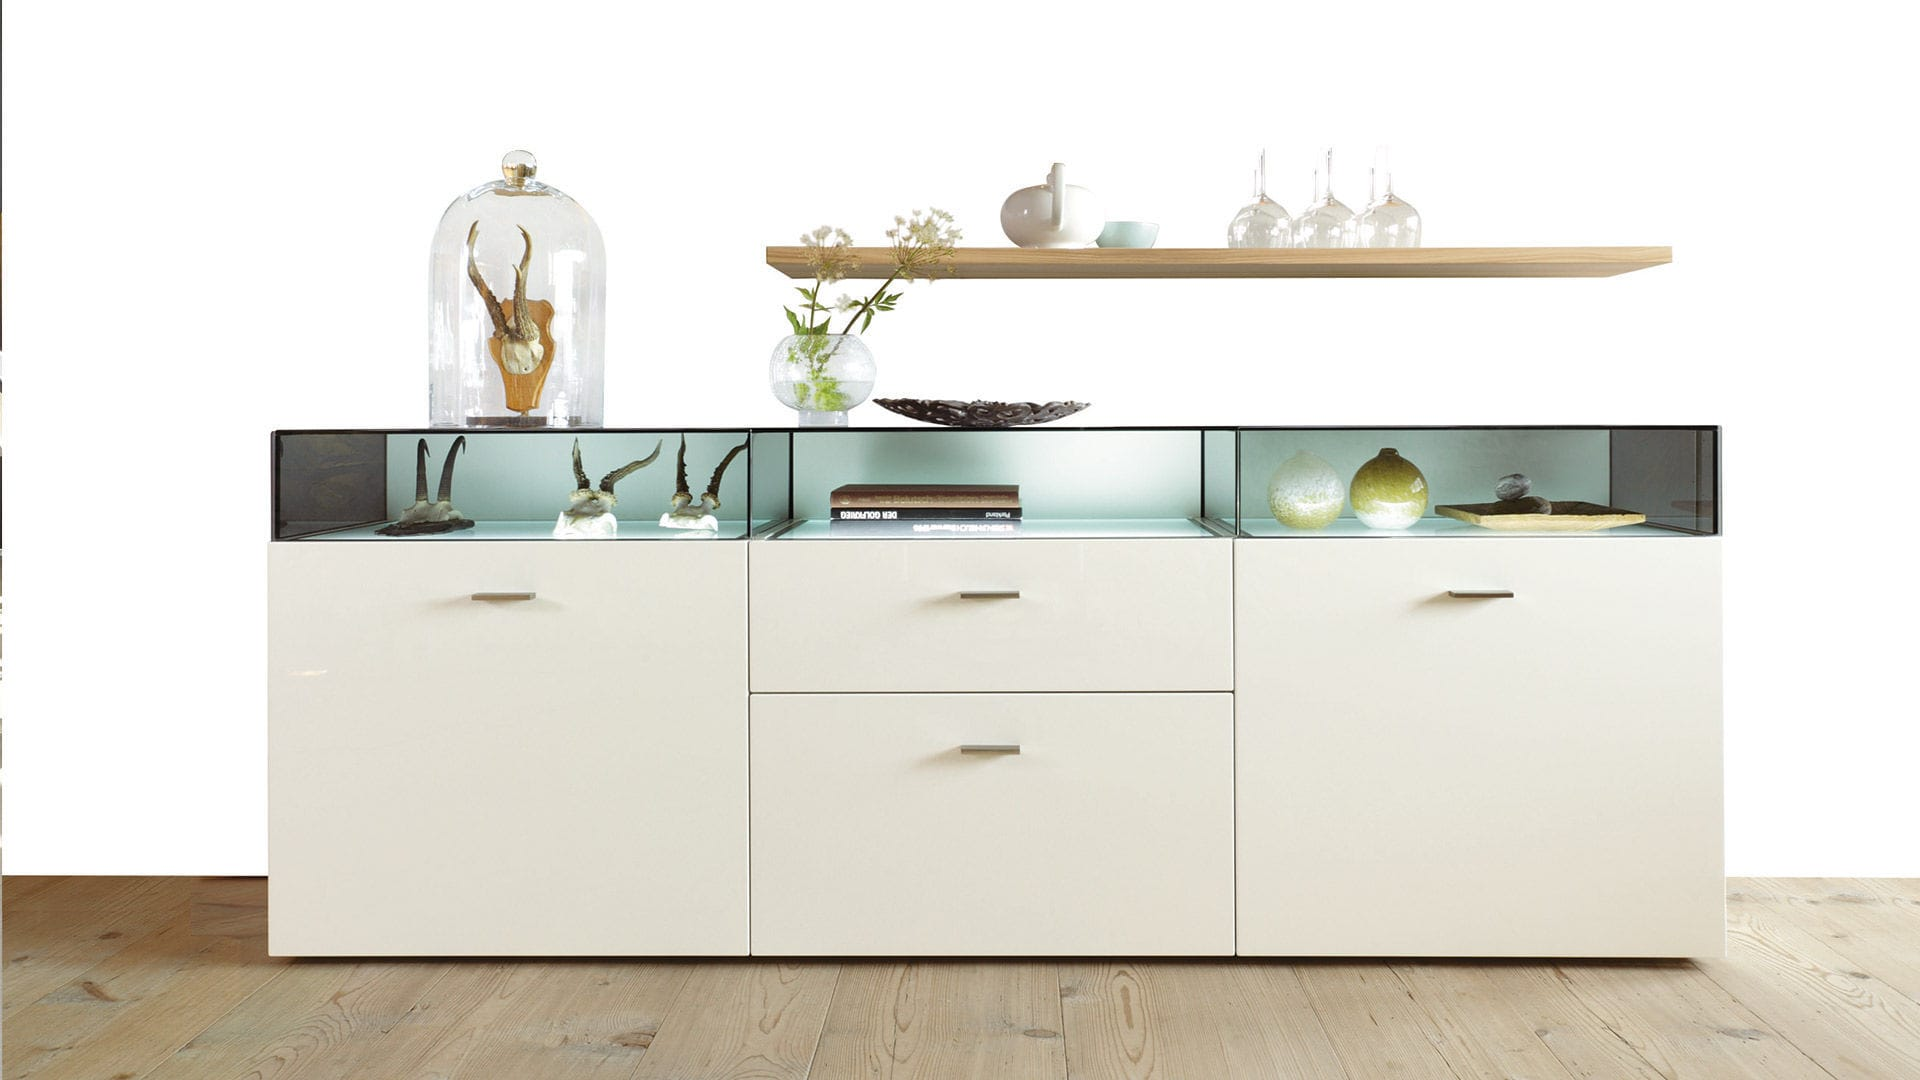 Sideboard holz glas  Modernes Sideboard / Glas / hochglanzlackiertes Holz - NOW! NO.14 ...